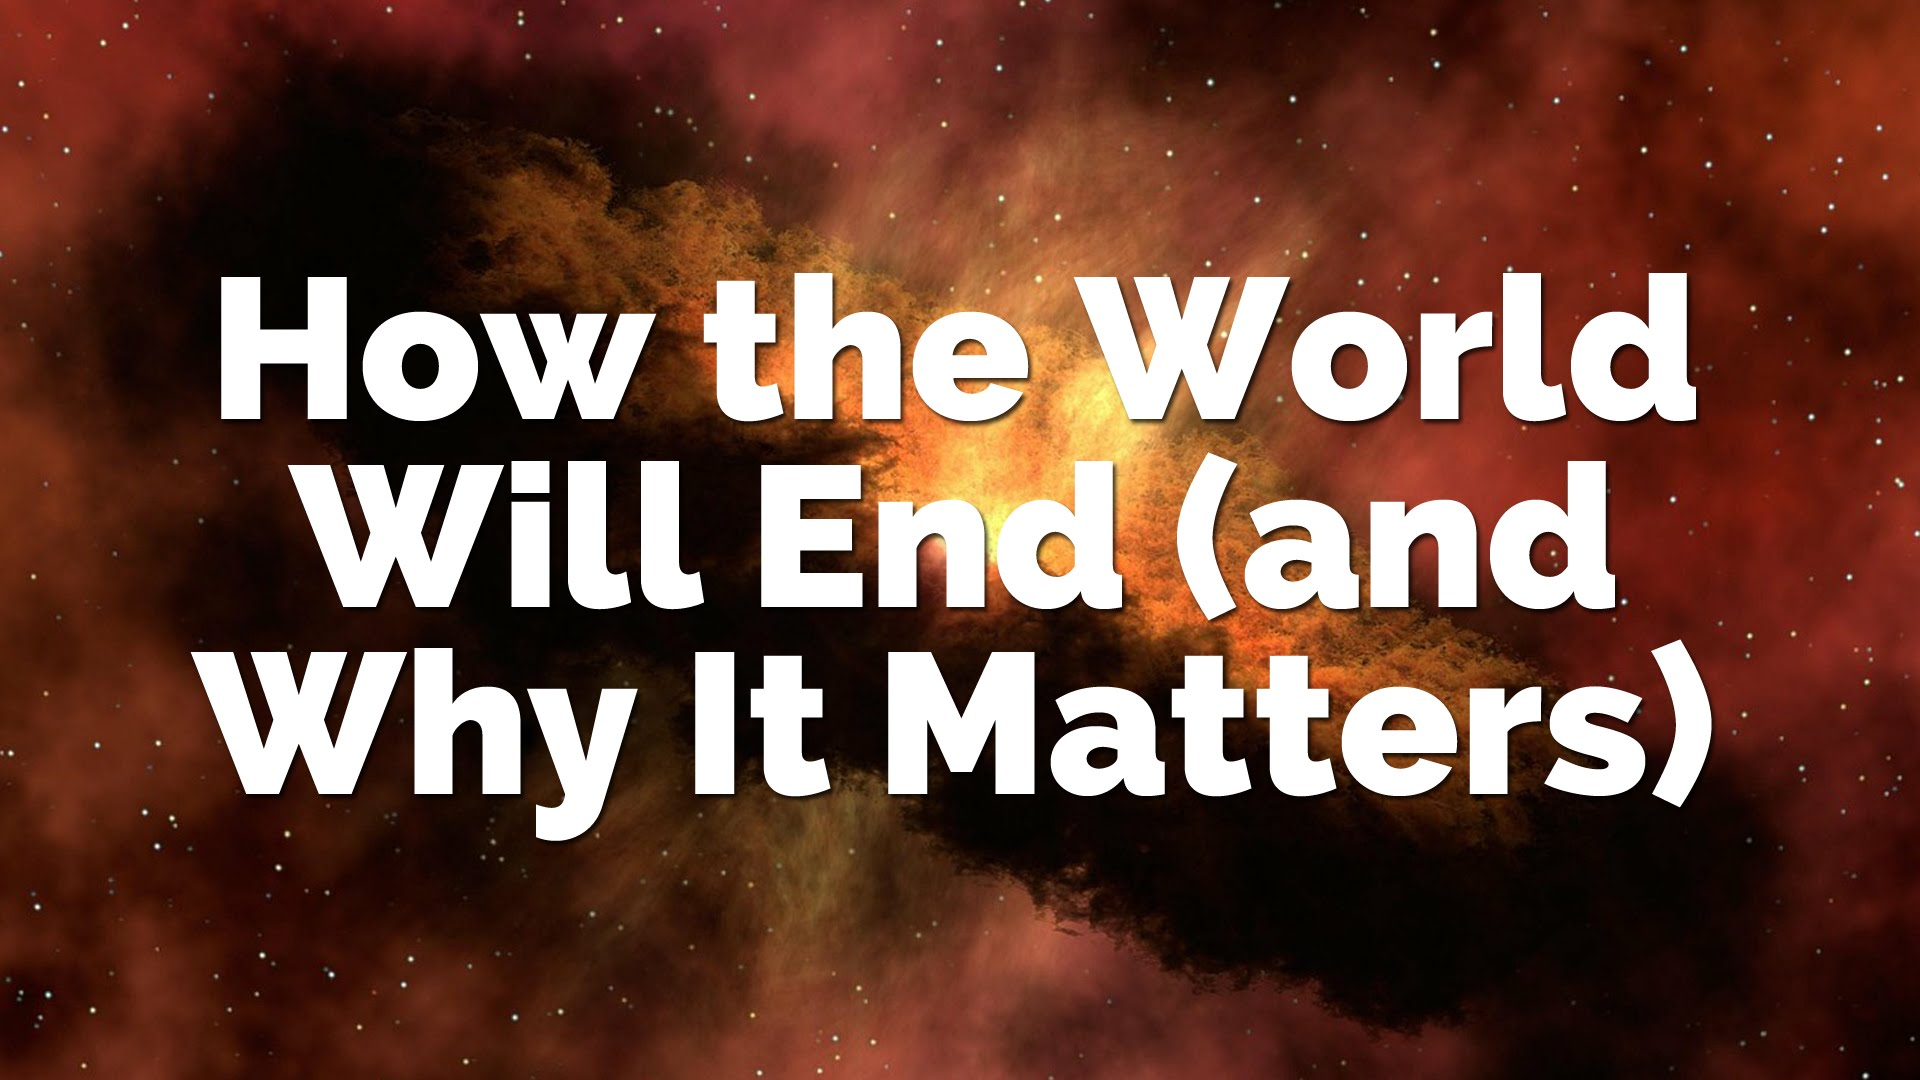 How the World Will End (and Why It Matters)